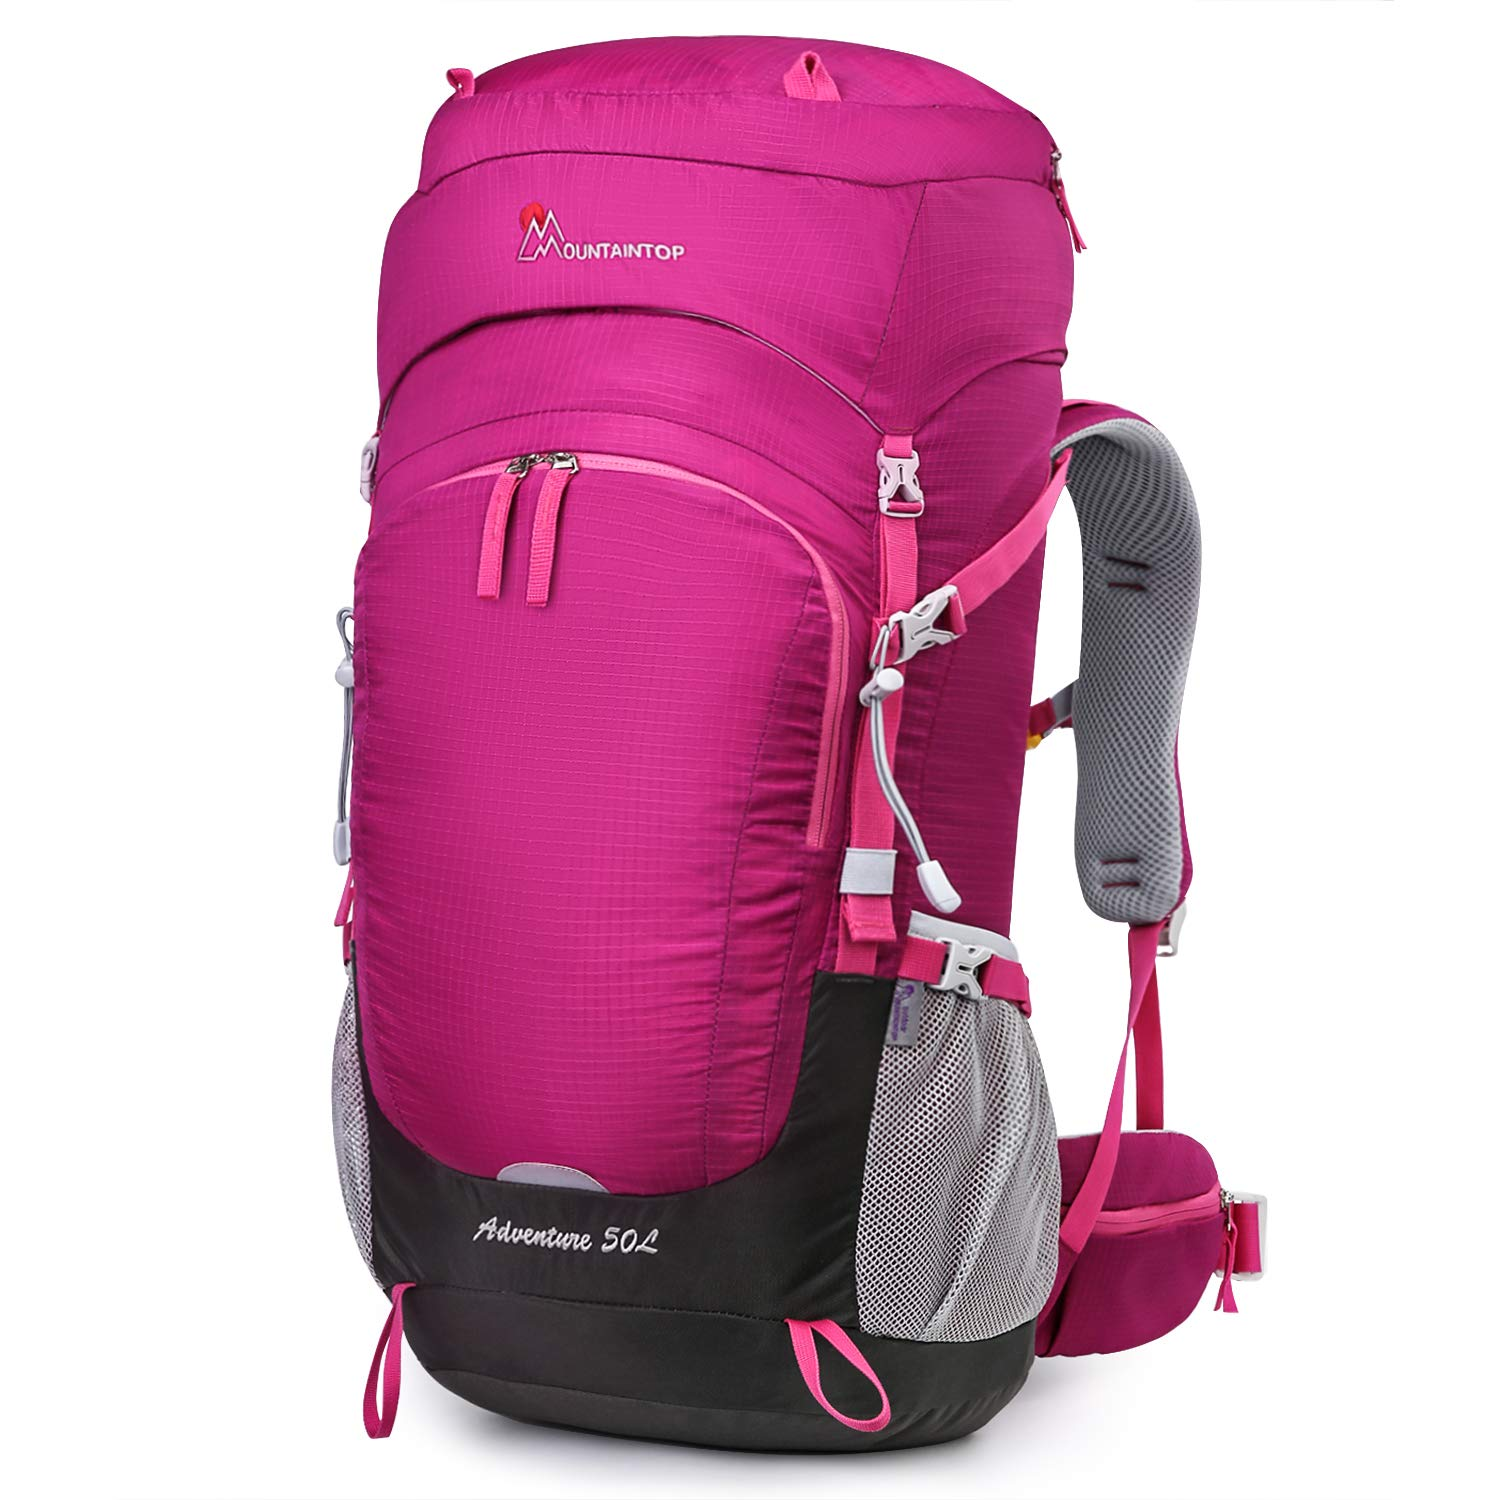 MOUNTAINTOP 55L/65L Internal Frame Backpack Hiking Backpack with Rain Cover (50L-Purplish red) by MOUNTAINTOP